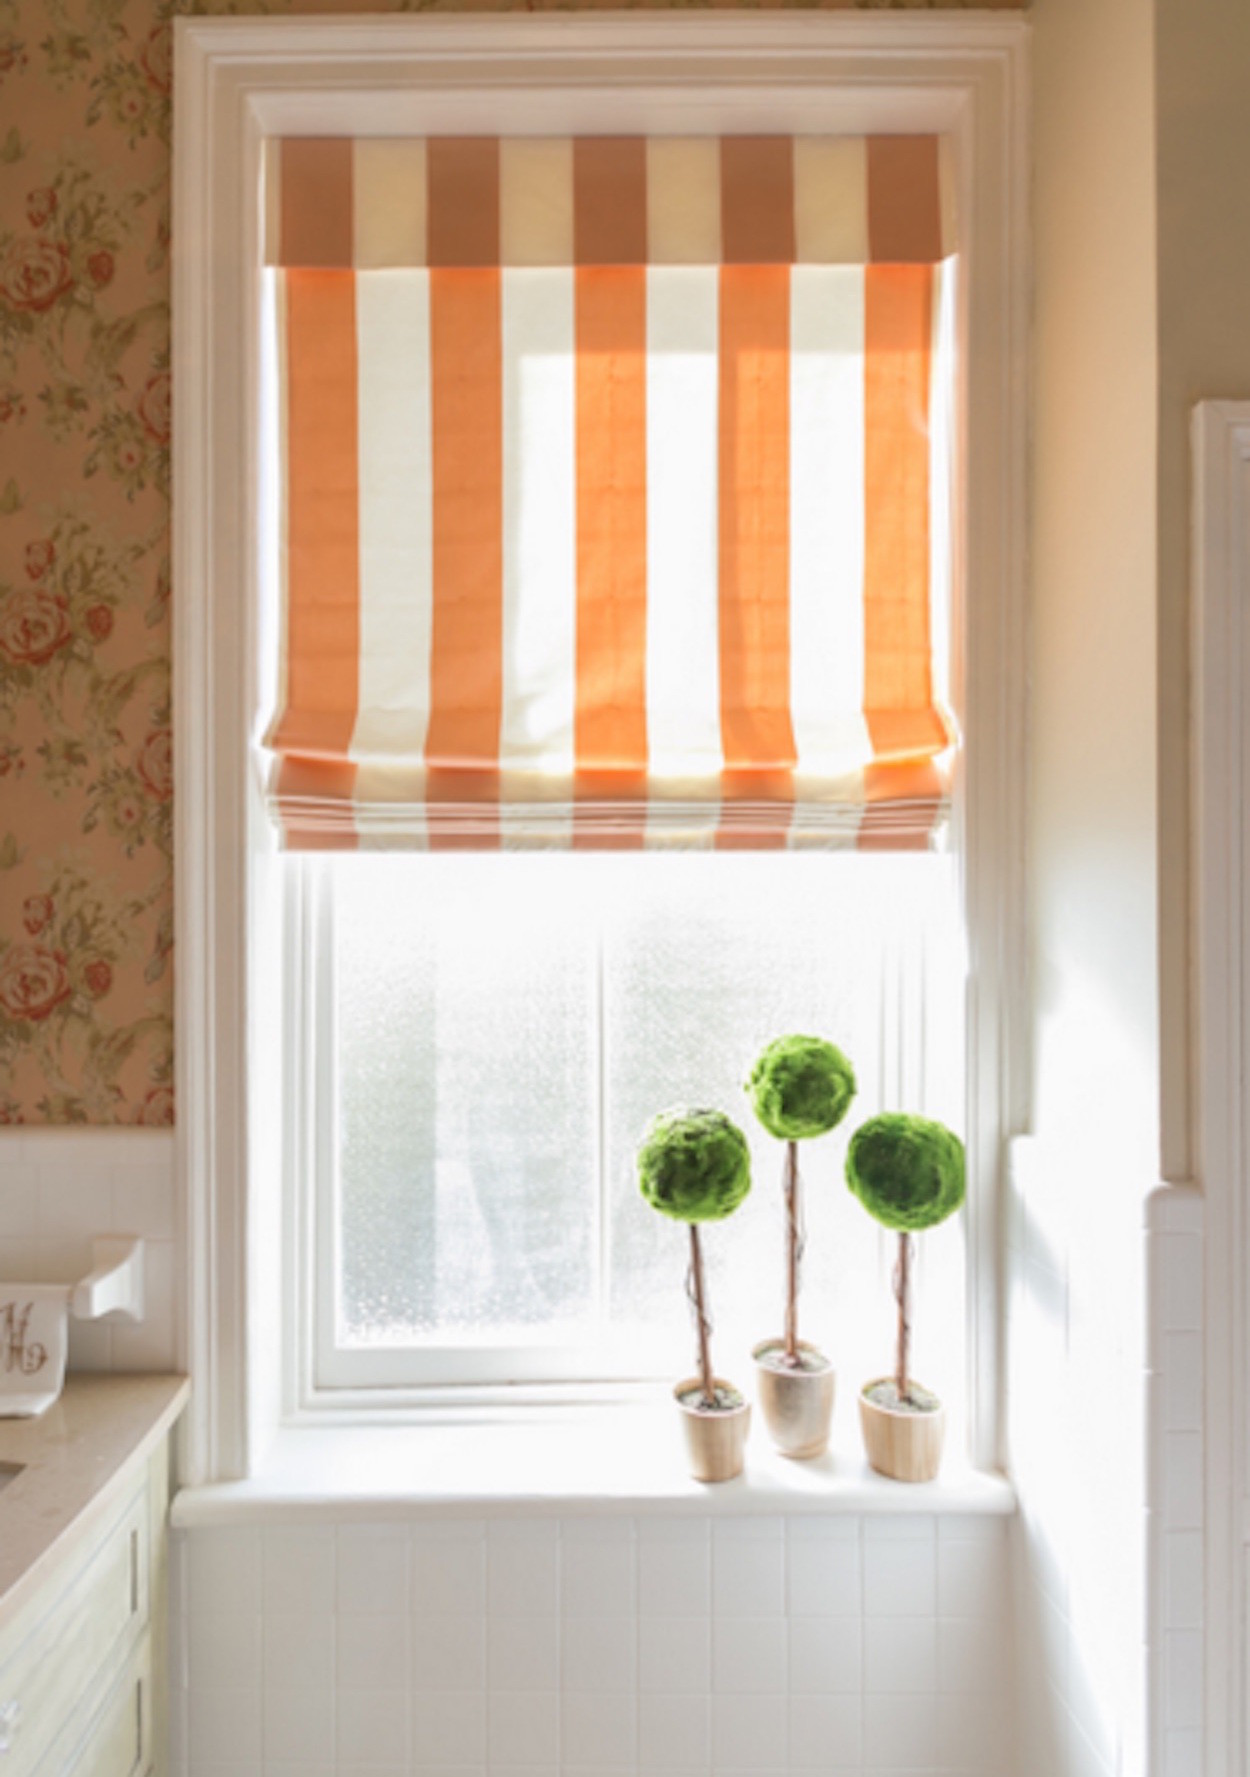 7 different bathroom window treatments you might not have thought of | XZASEJA